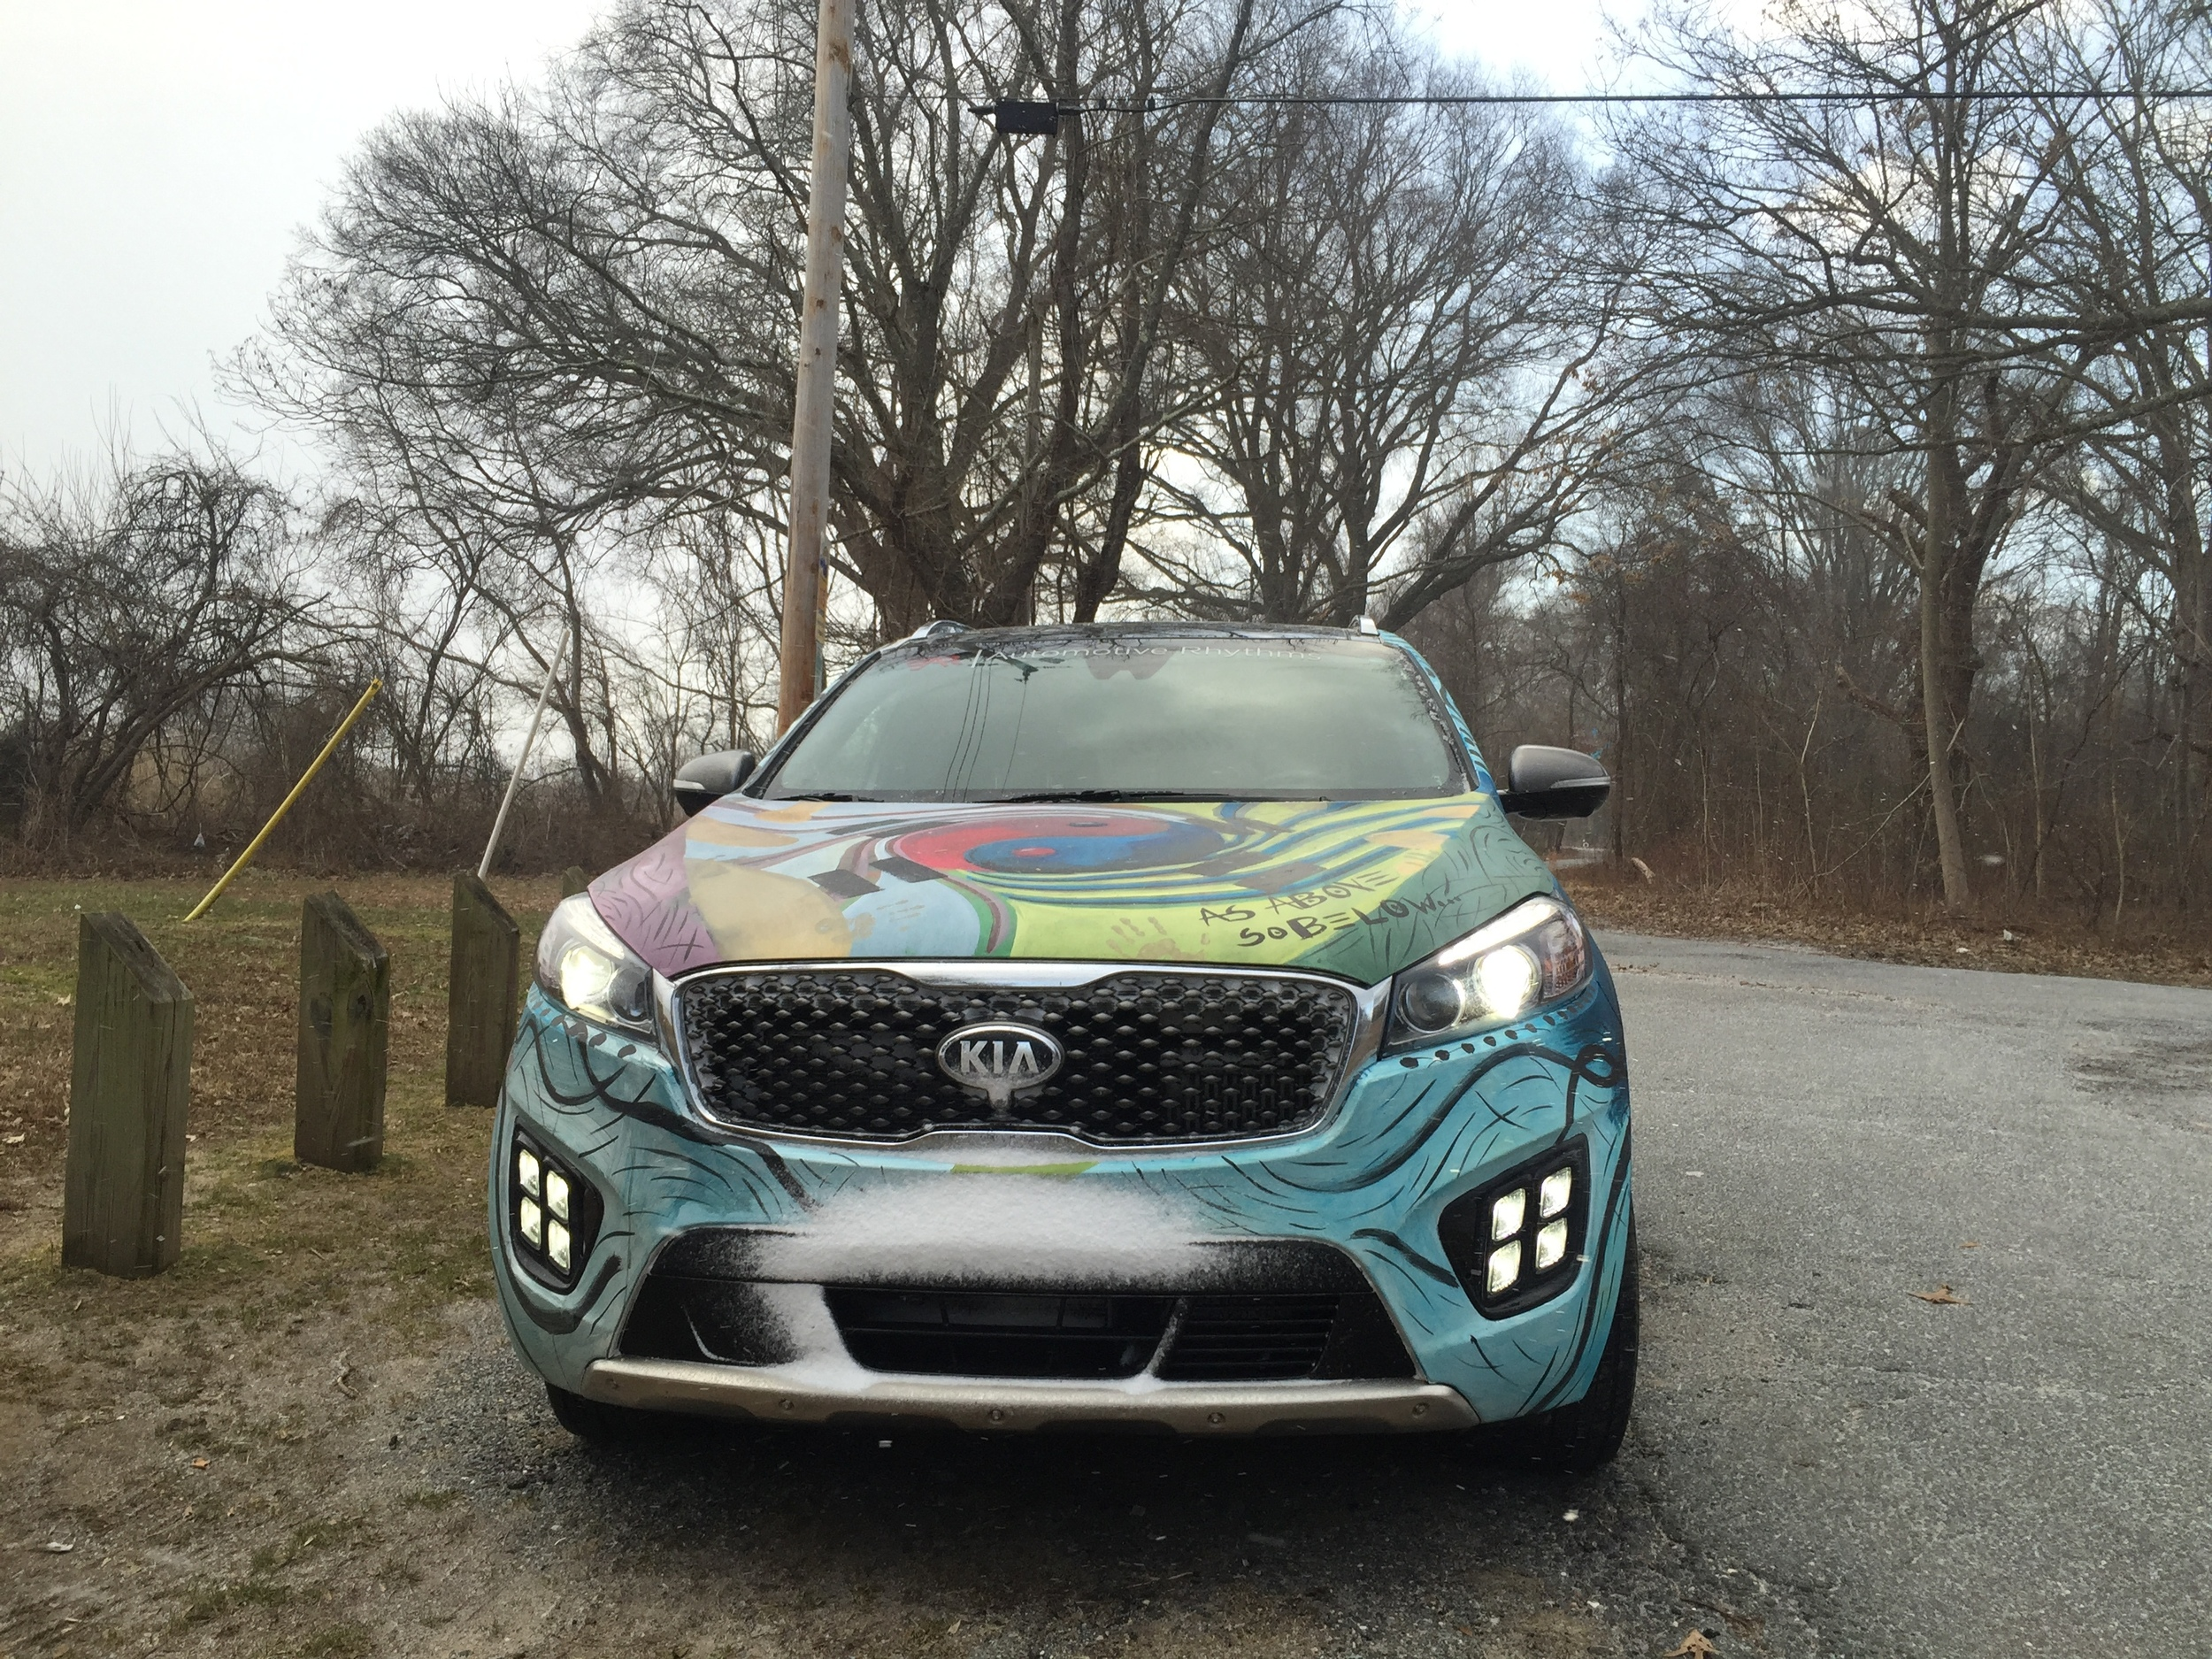 Kia Sorento Art Car - Southern Maryland